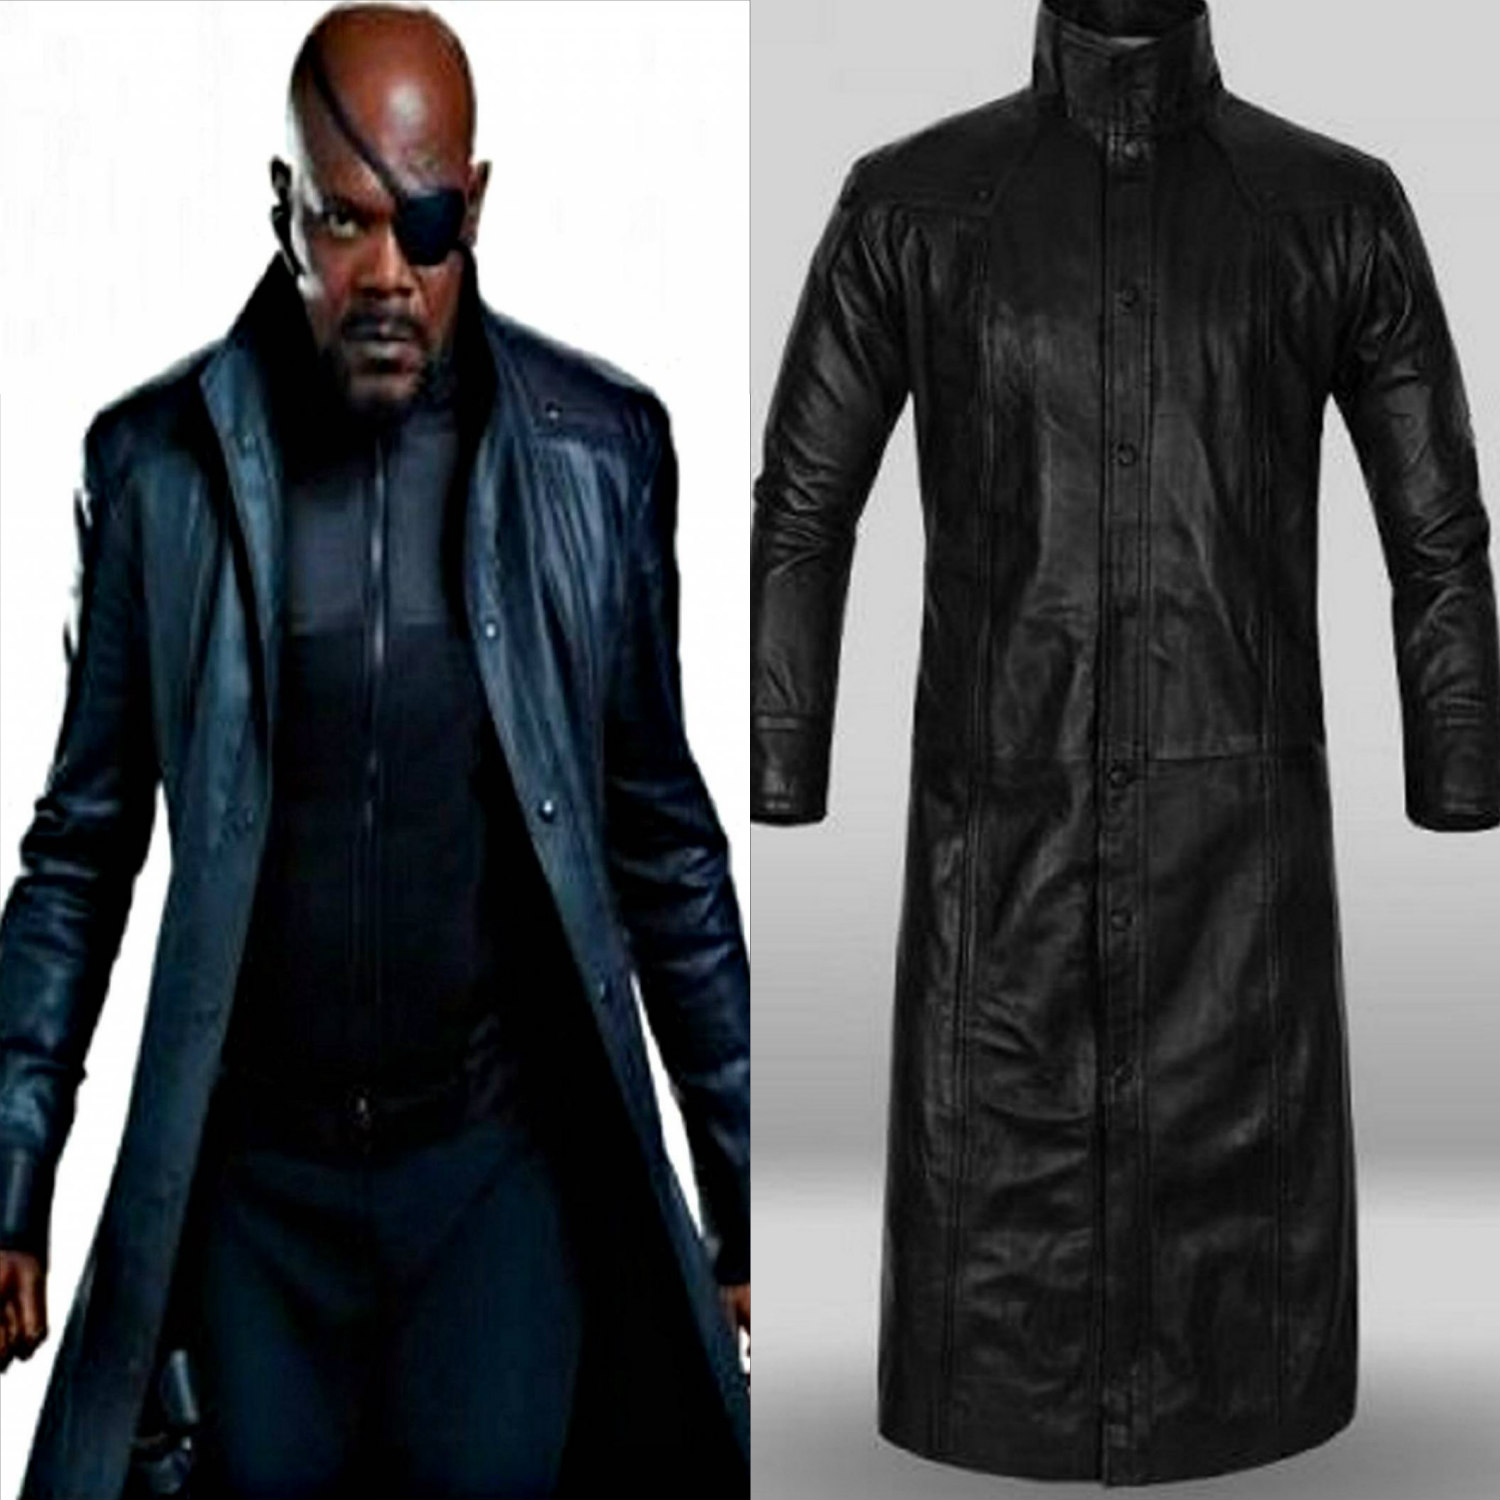 Captain America: The Winter Soldier Adult Avengers Nick Fury Black Genuine Leather Coat - DeluxeAdultCostumes.com